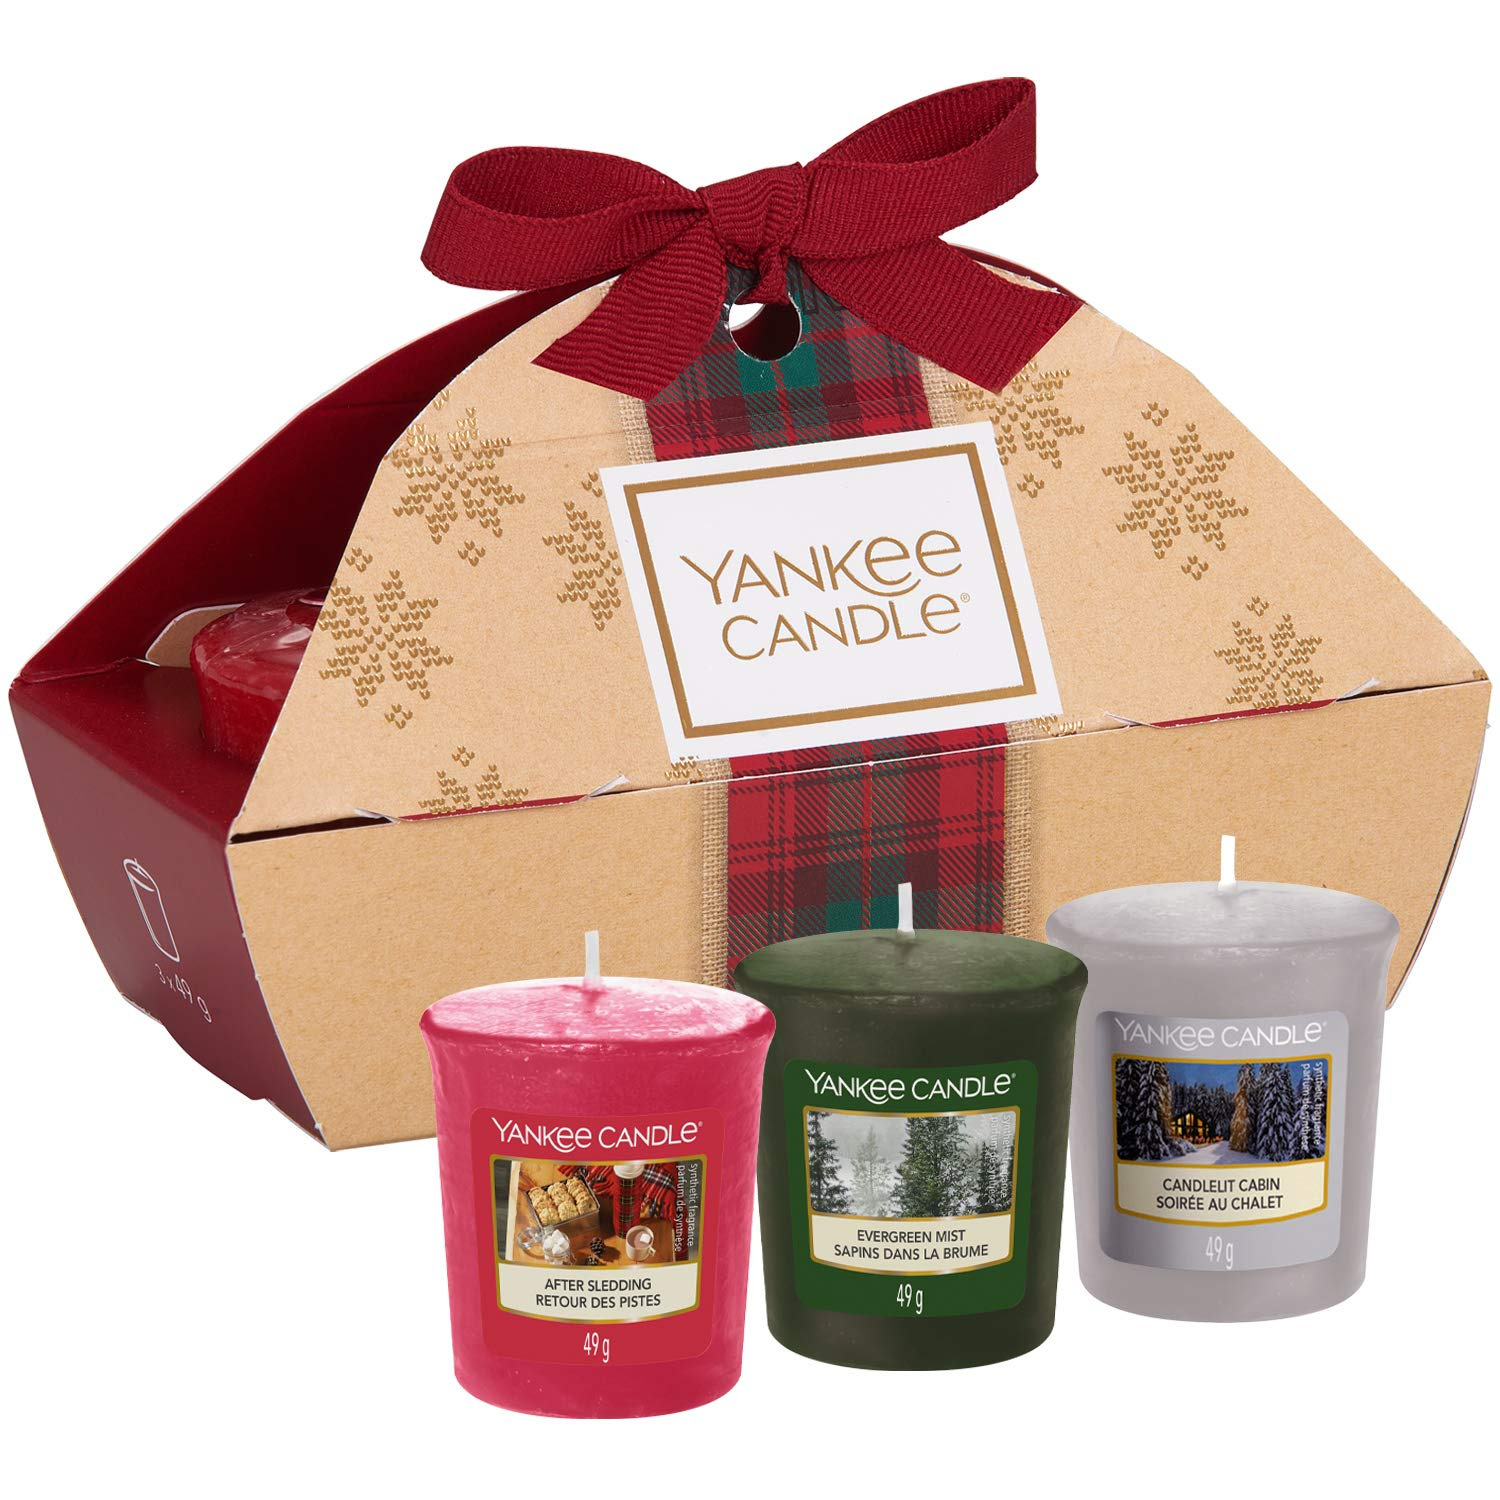 Yankee Candle Gift Set with 3 Scented Votive Candles, Alpine Christmas Collection, Festive Gift Box